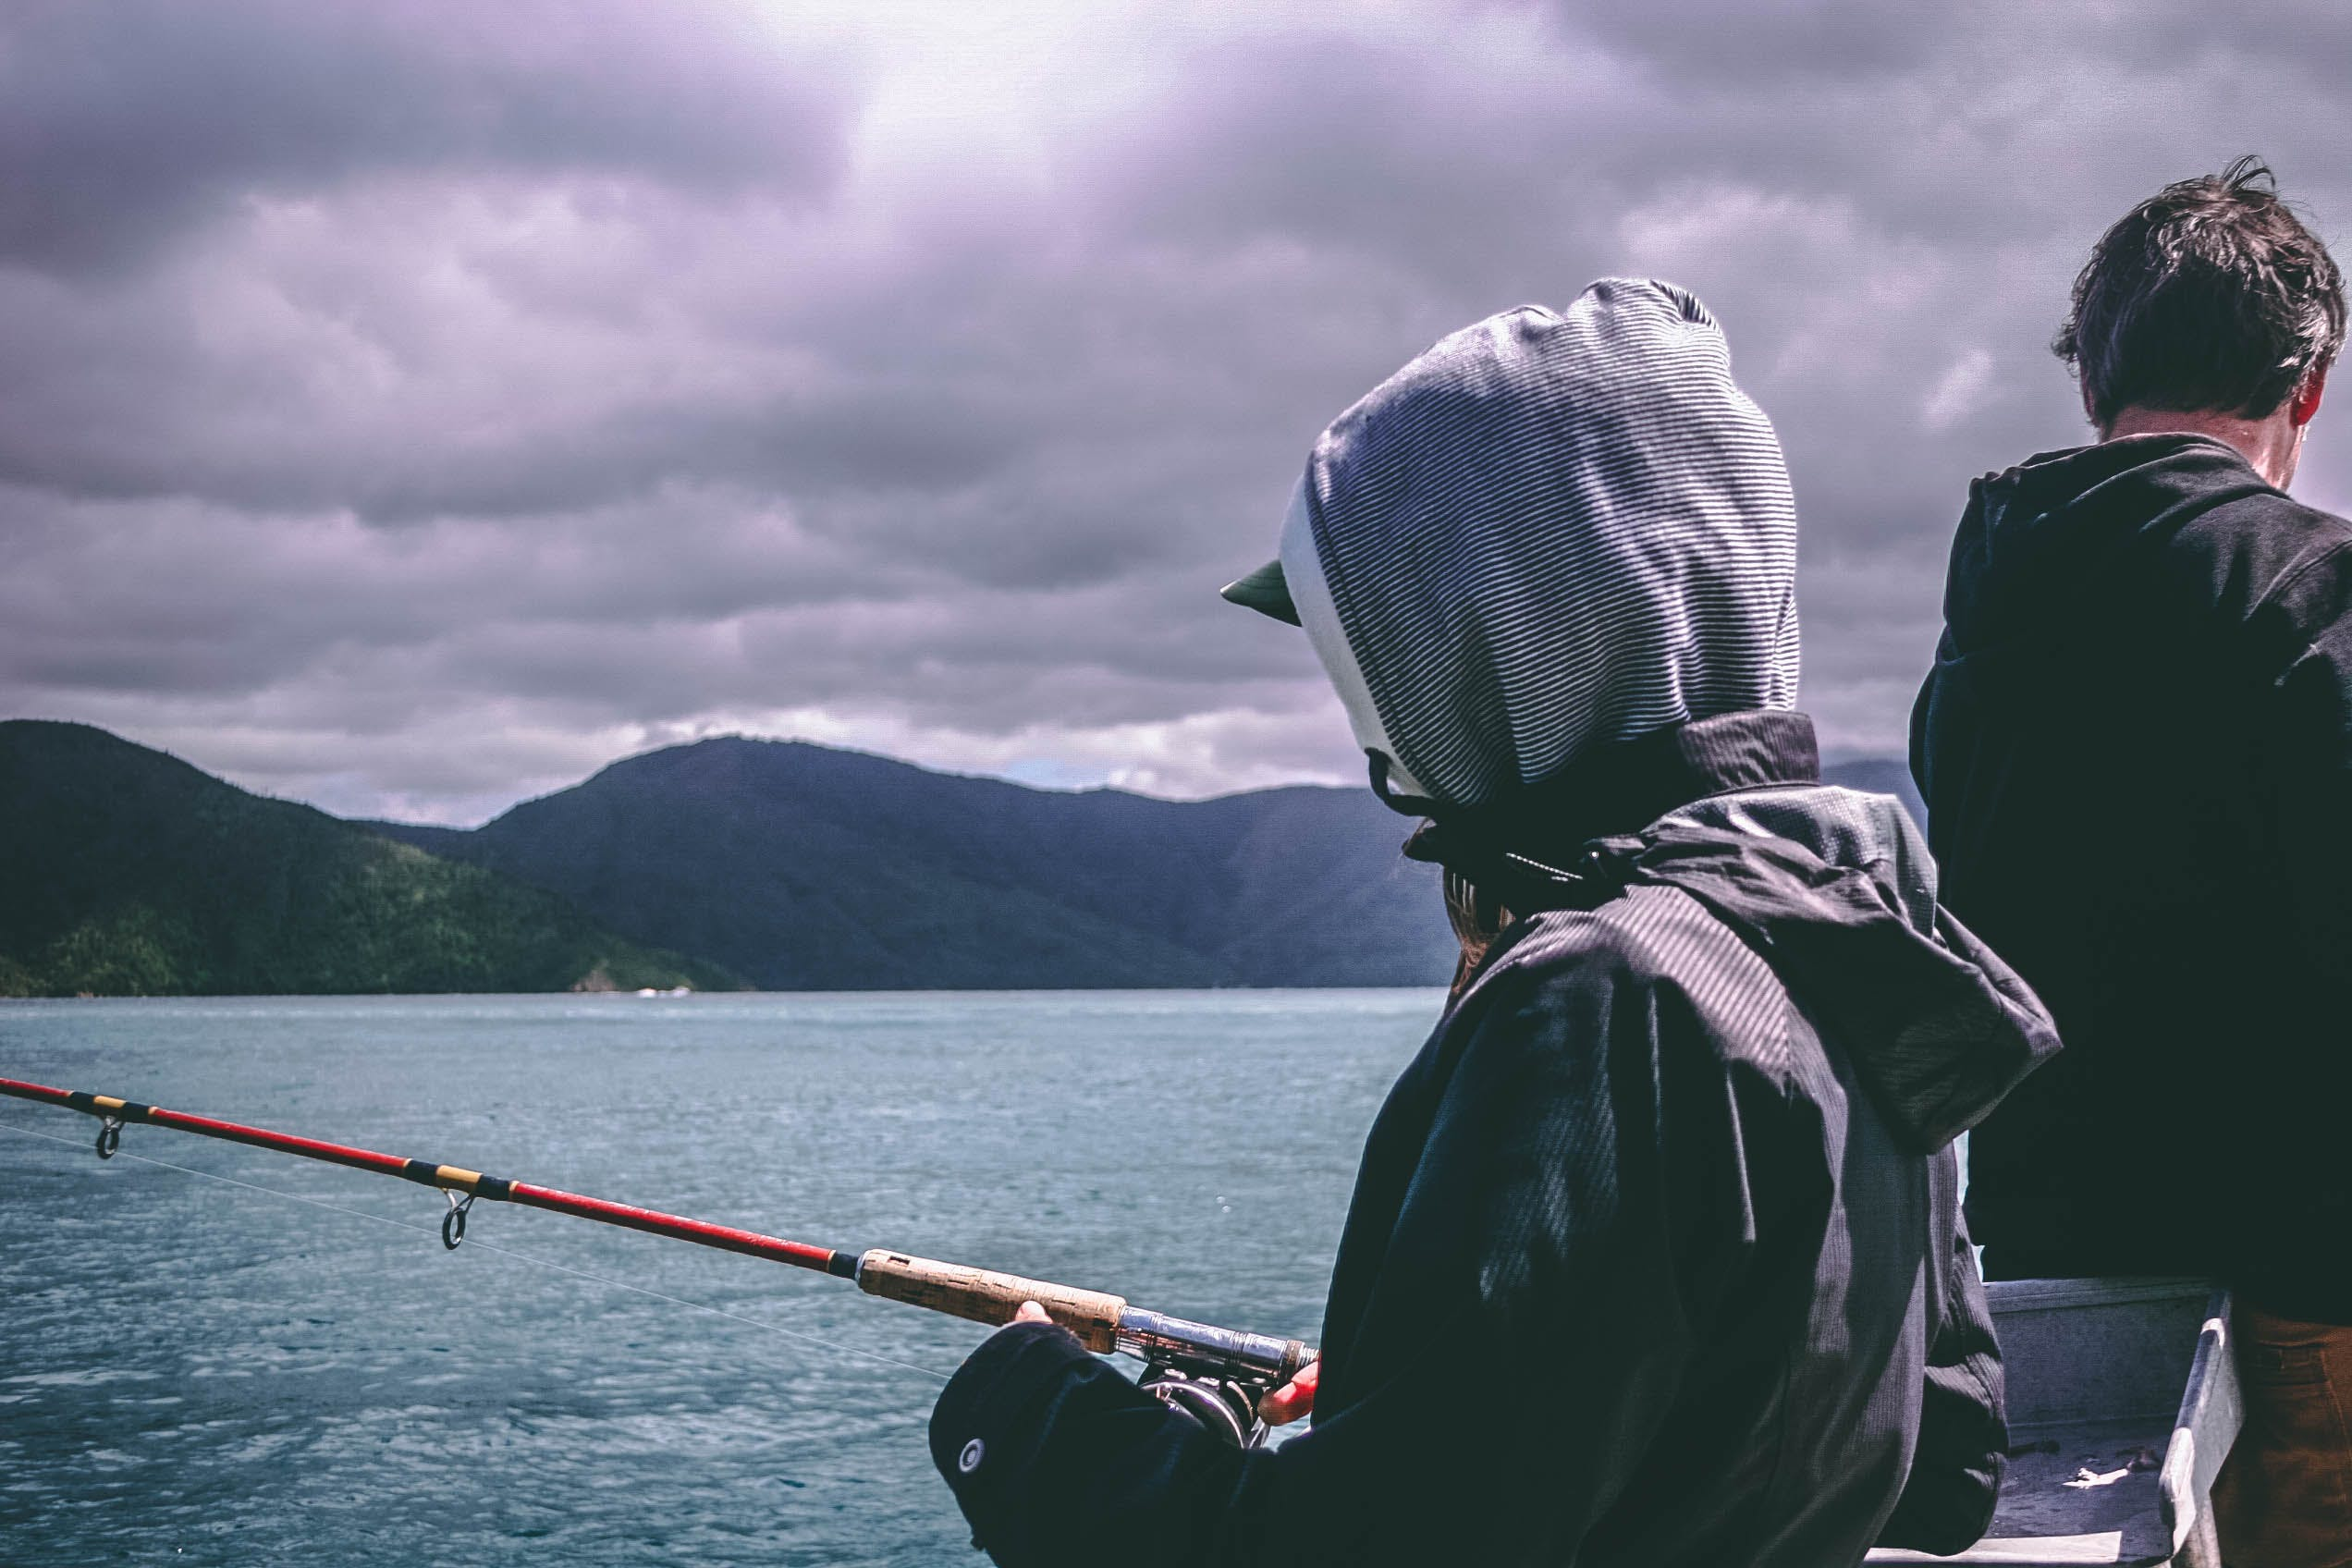 Free stock photo of fishing, sea, landscape, mountains